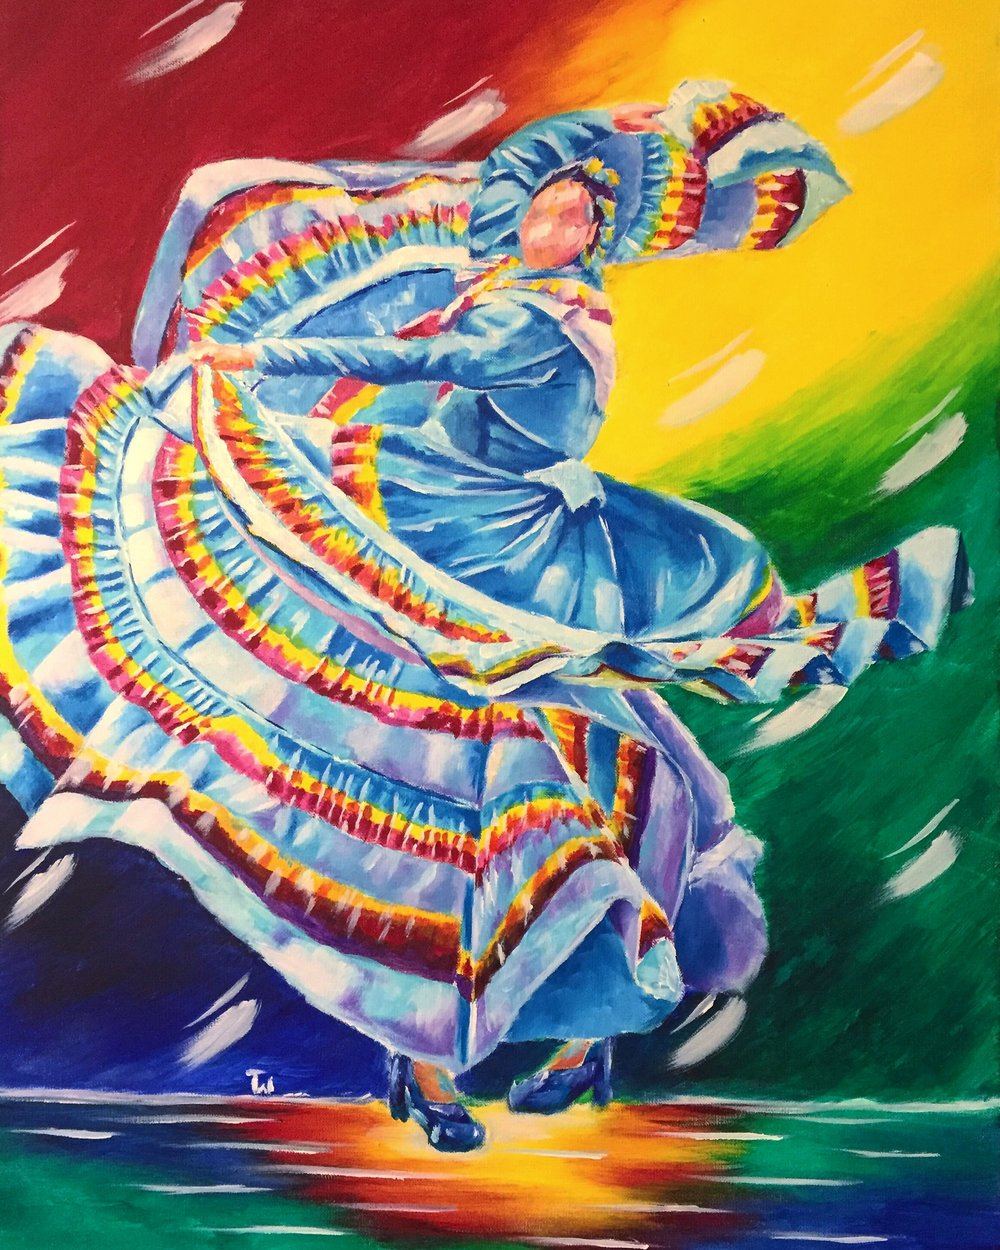 Chicana Movimiento - Painting of Folklorico Dancer 2 by Taylor Wise